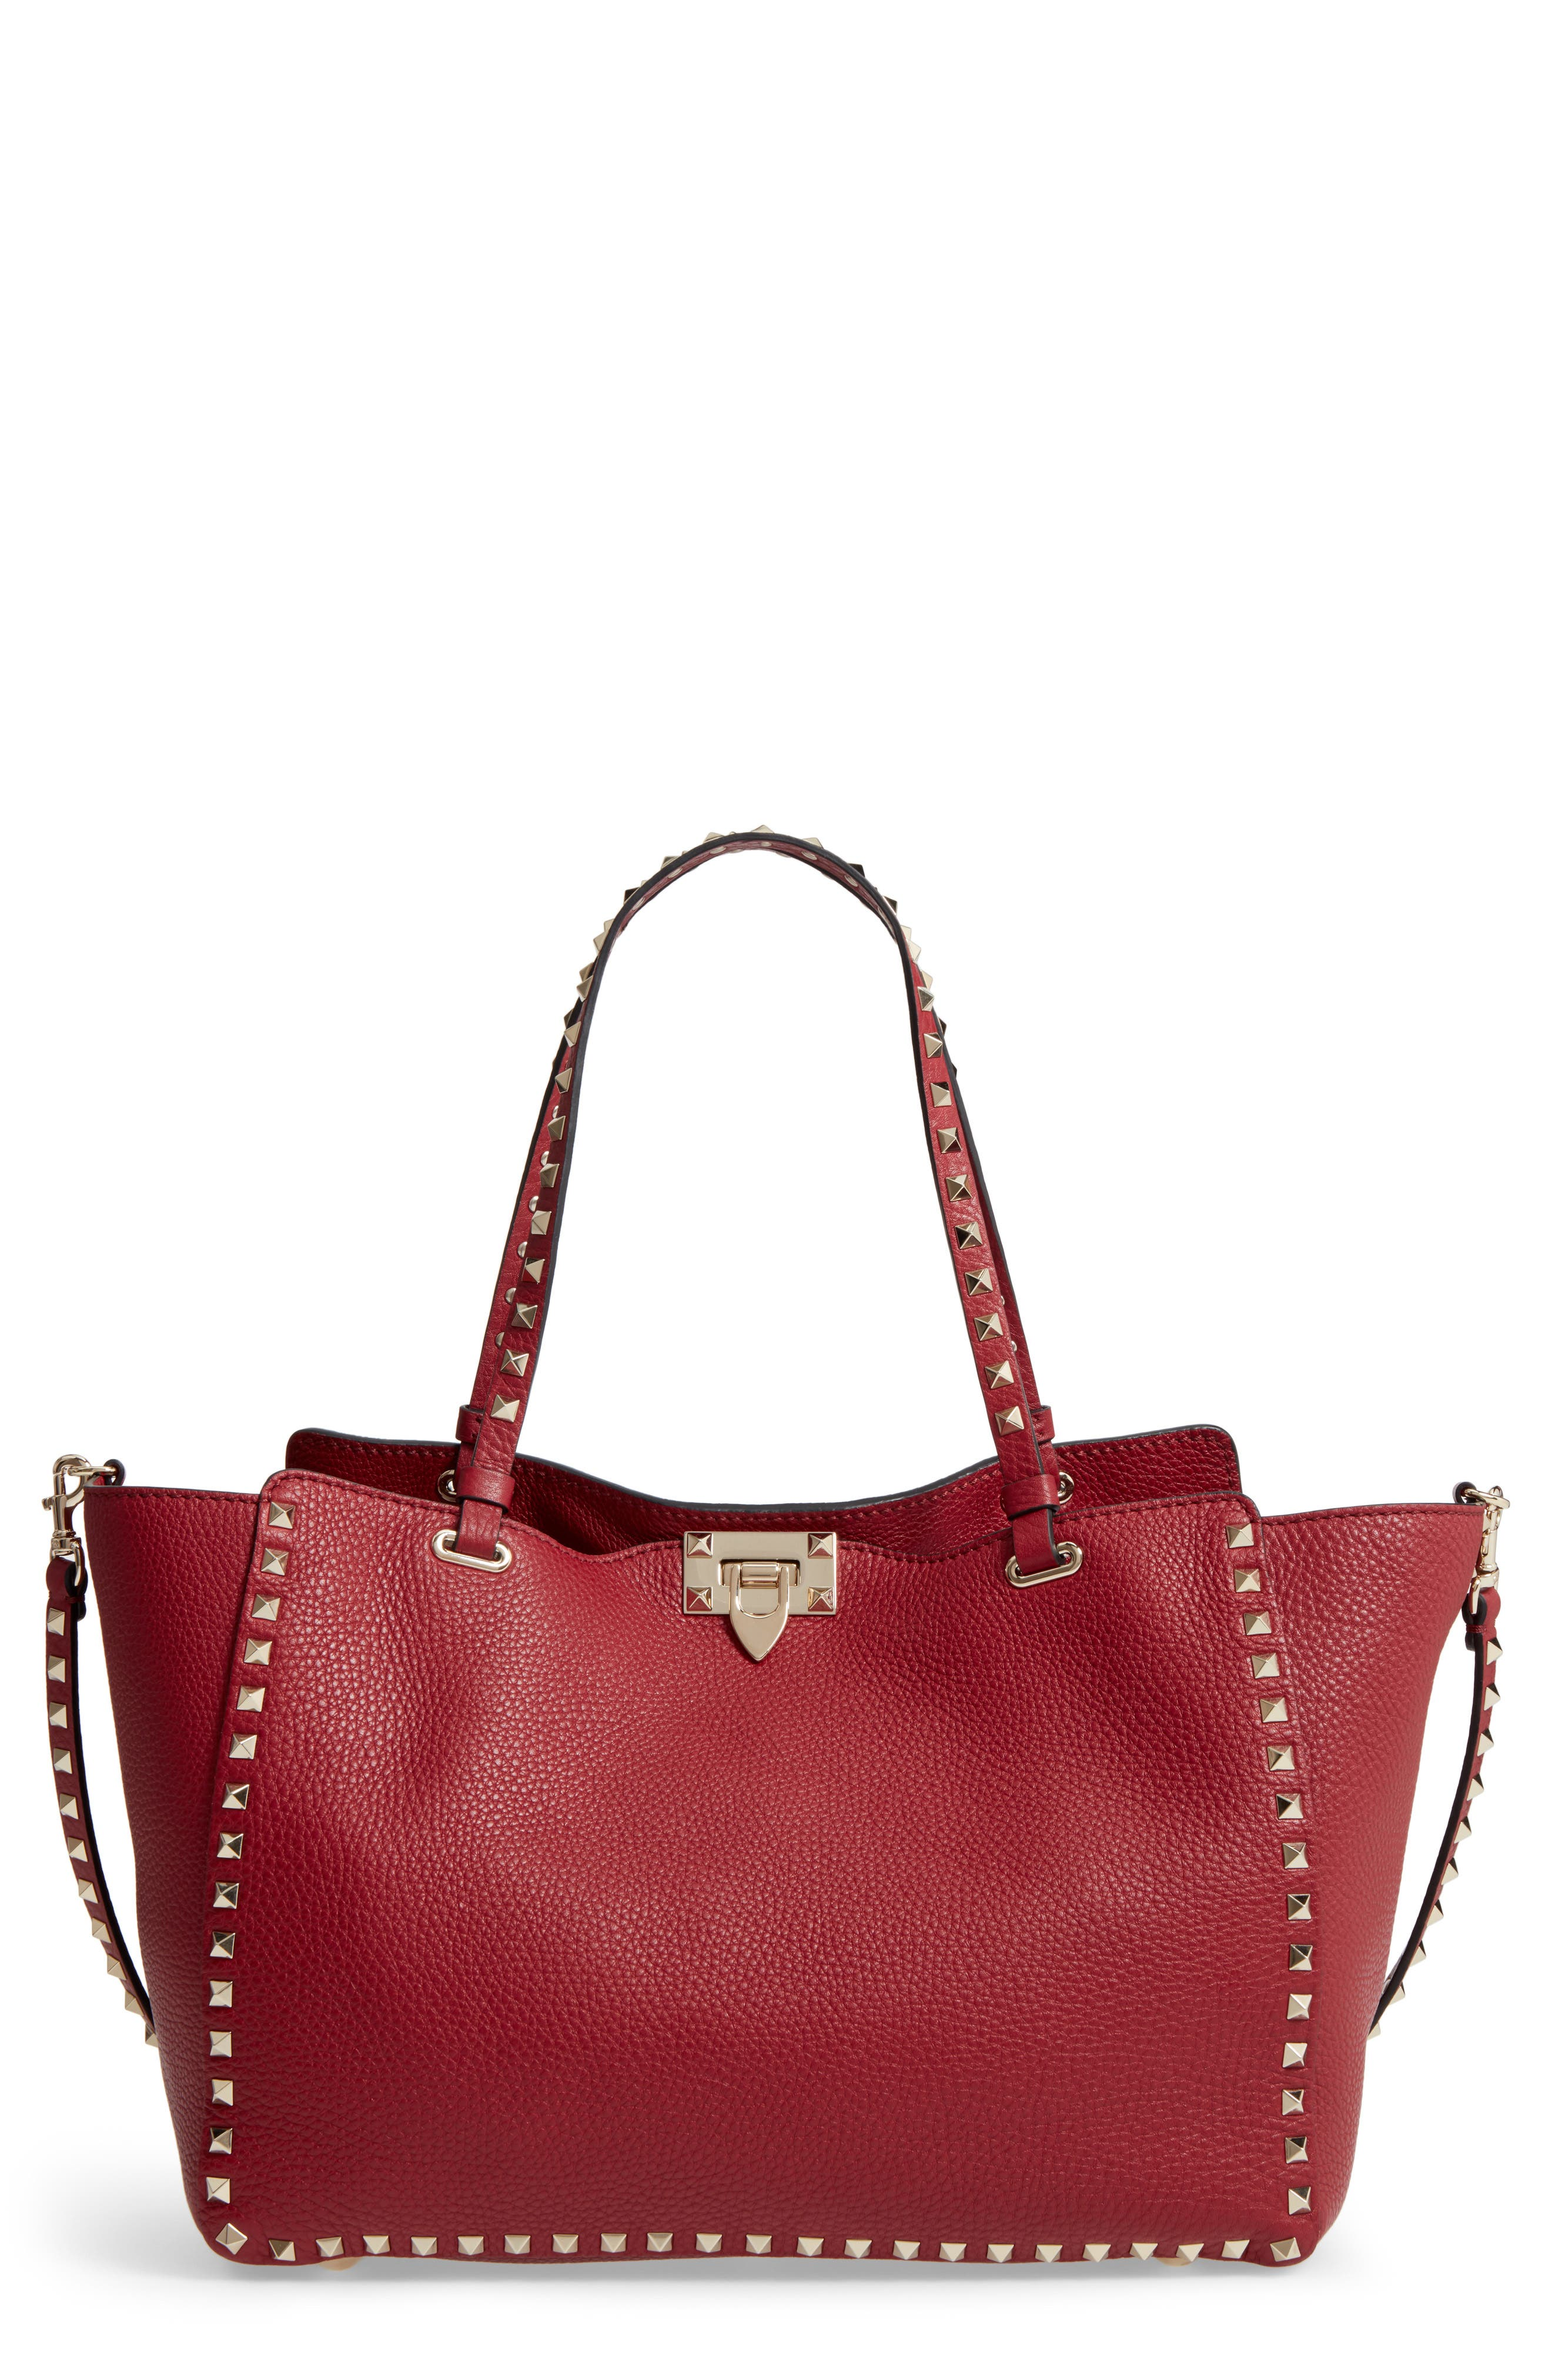 Medium Rockstud Grained Calfskin Leather Tote,                         Main,                         color, 930